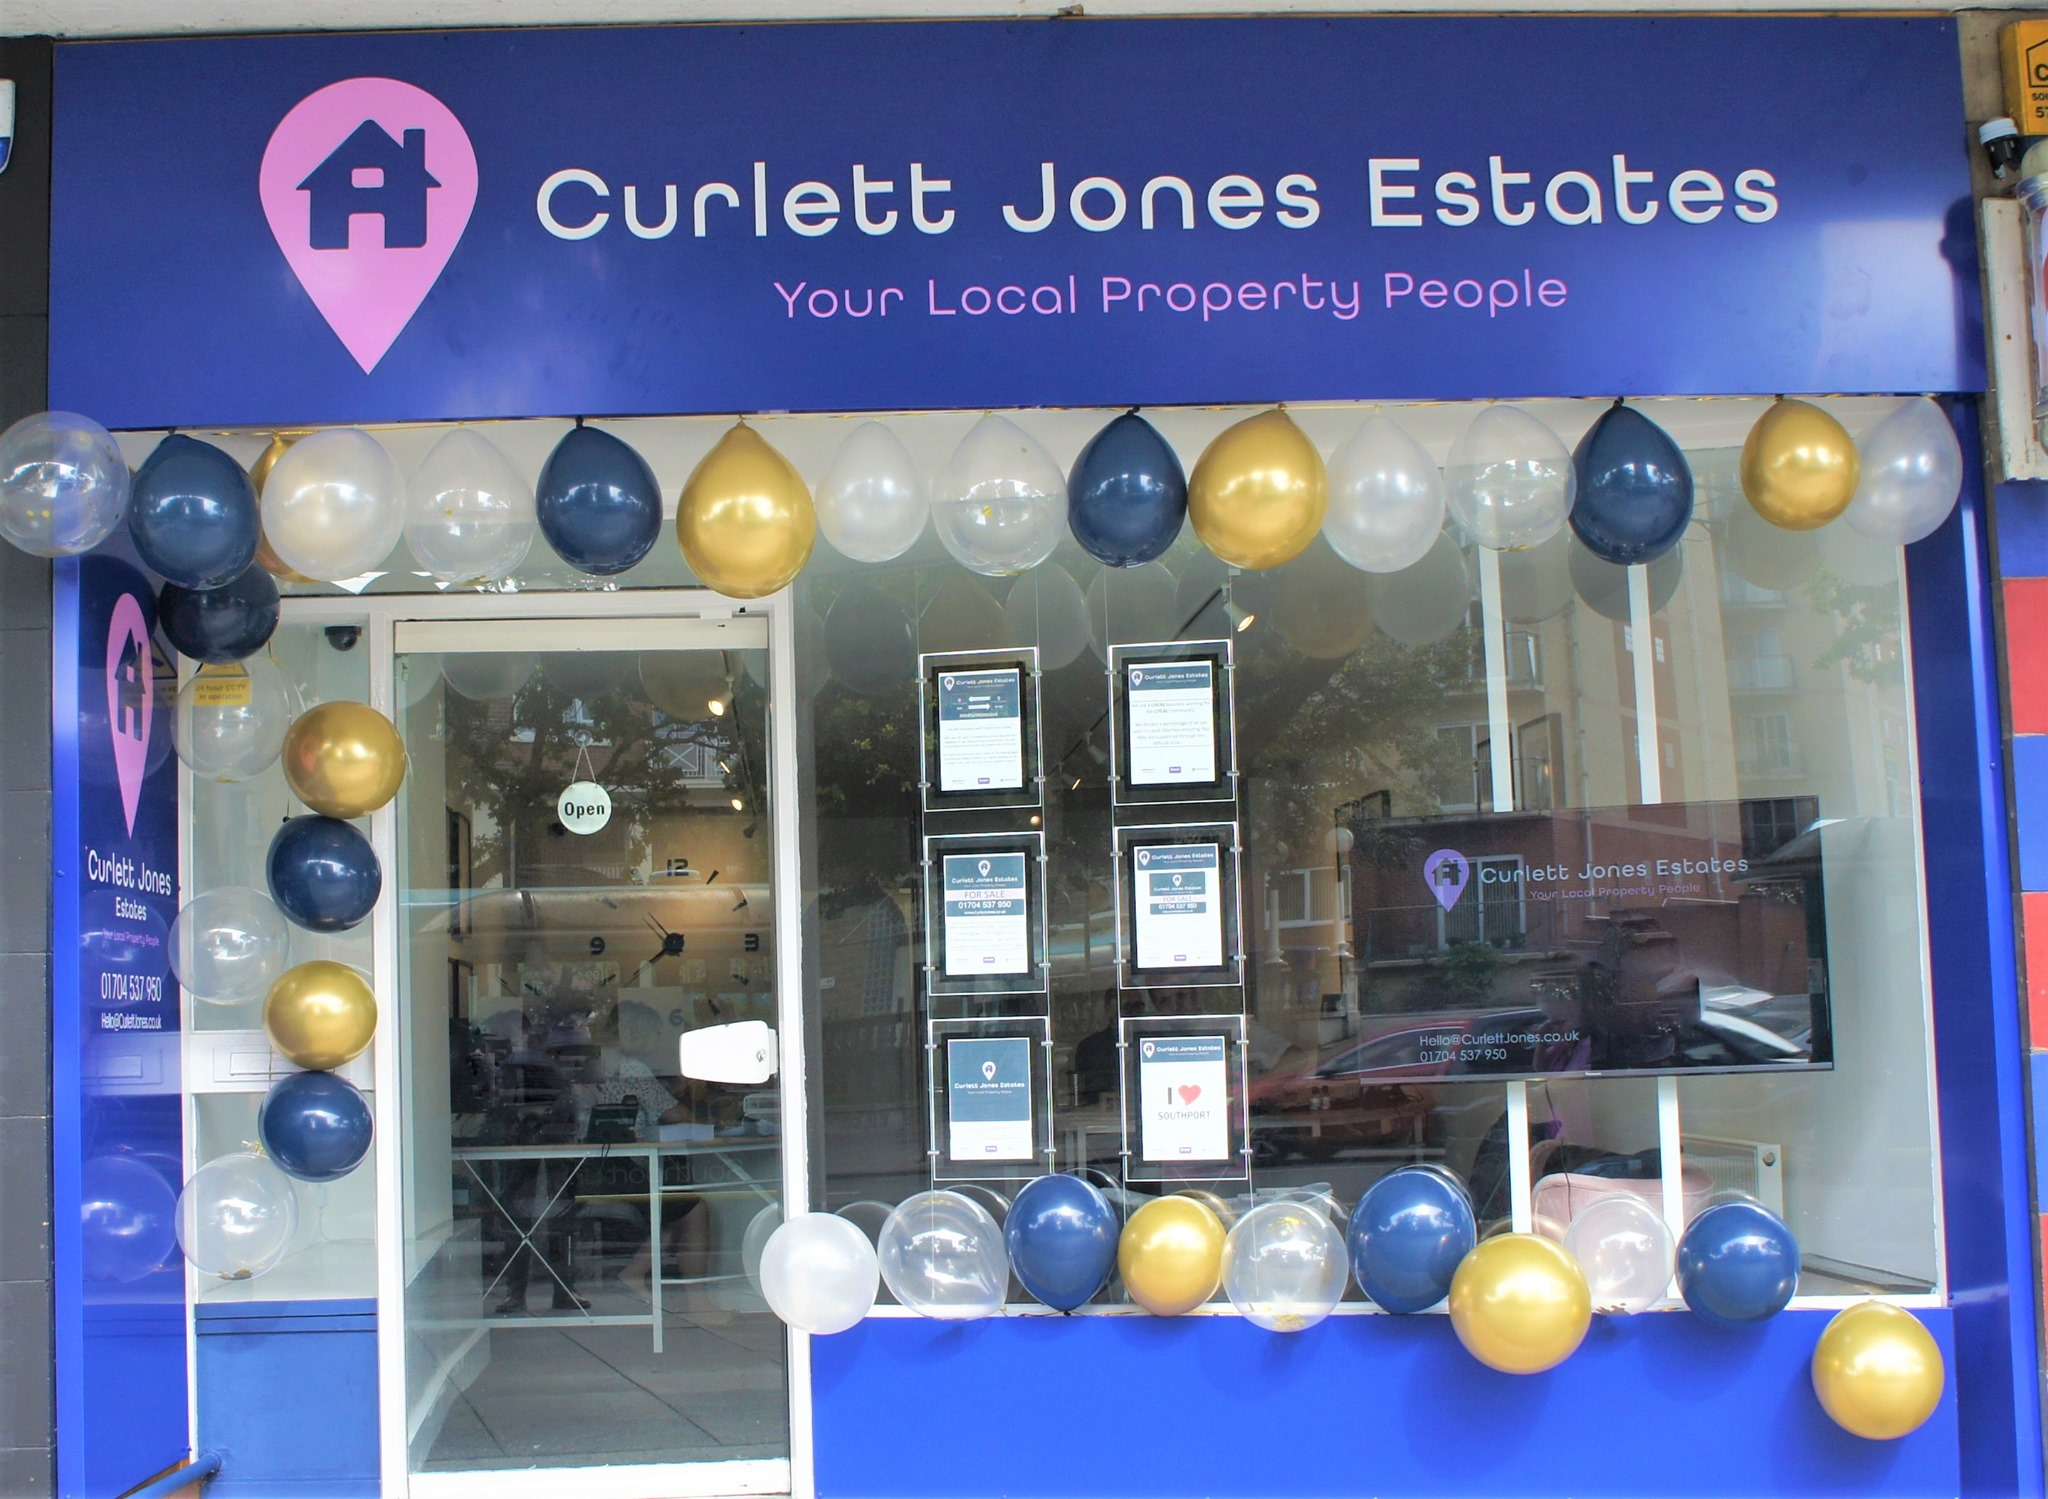 Curlett Jones Estates is situated at 653 Lord Street, Southport